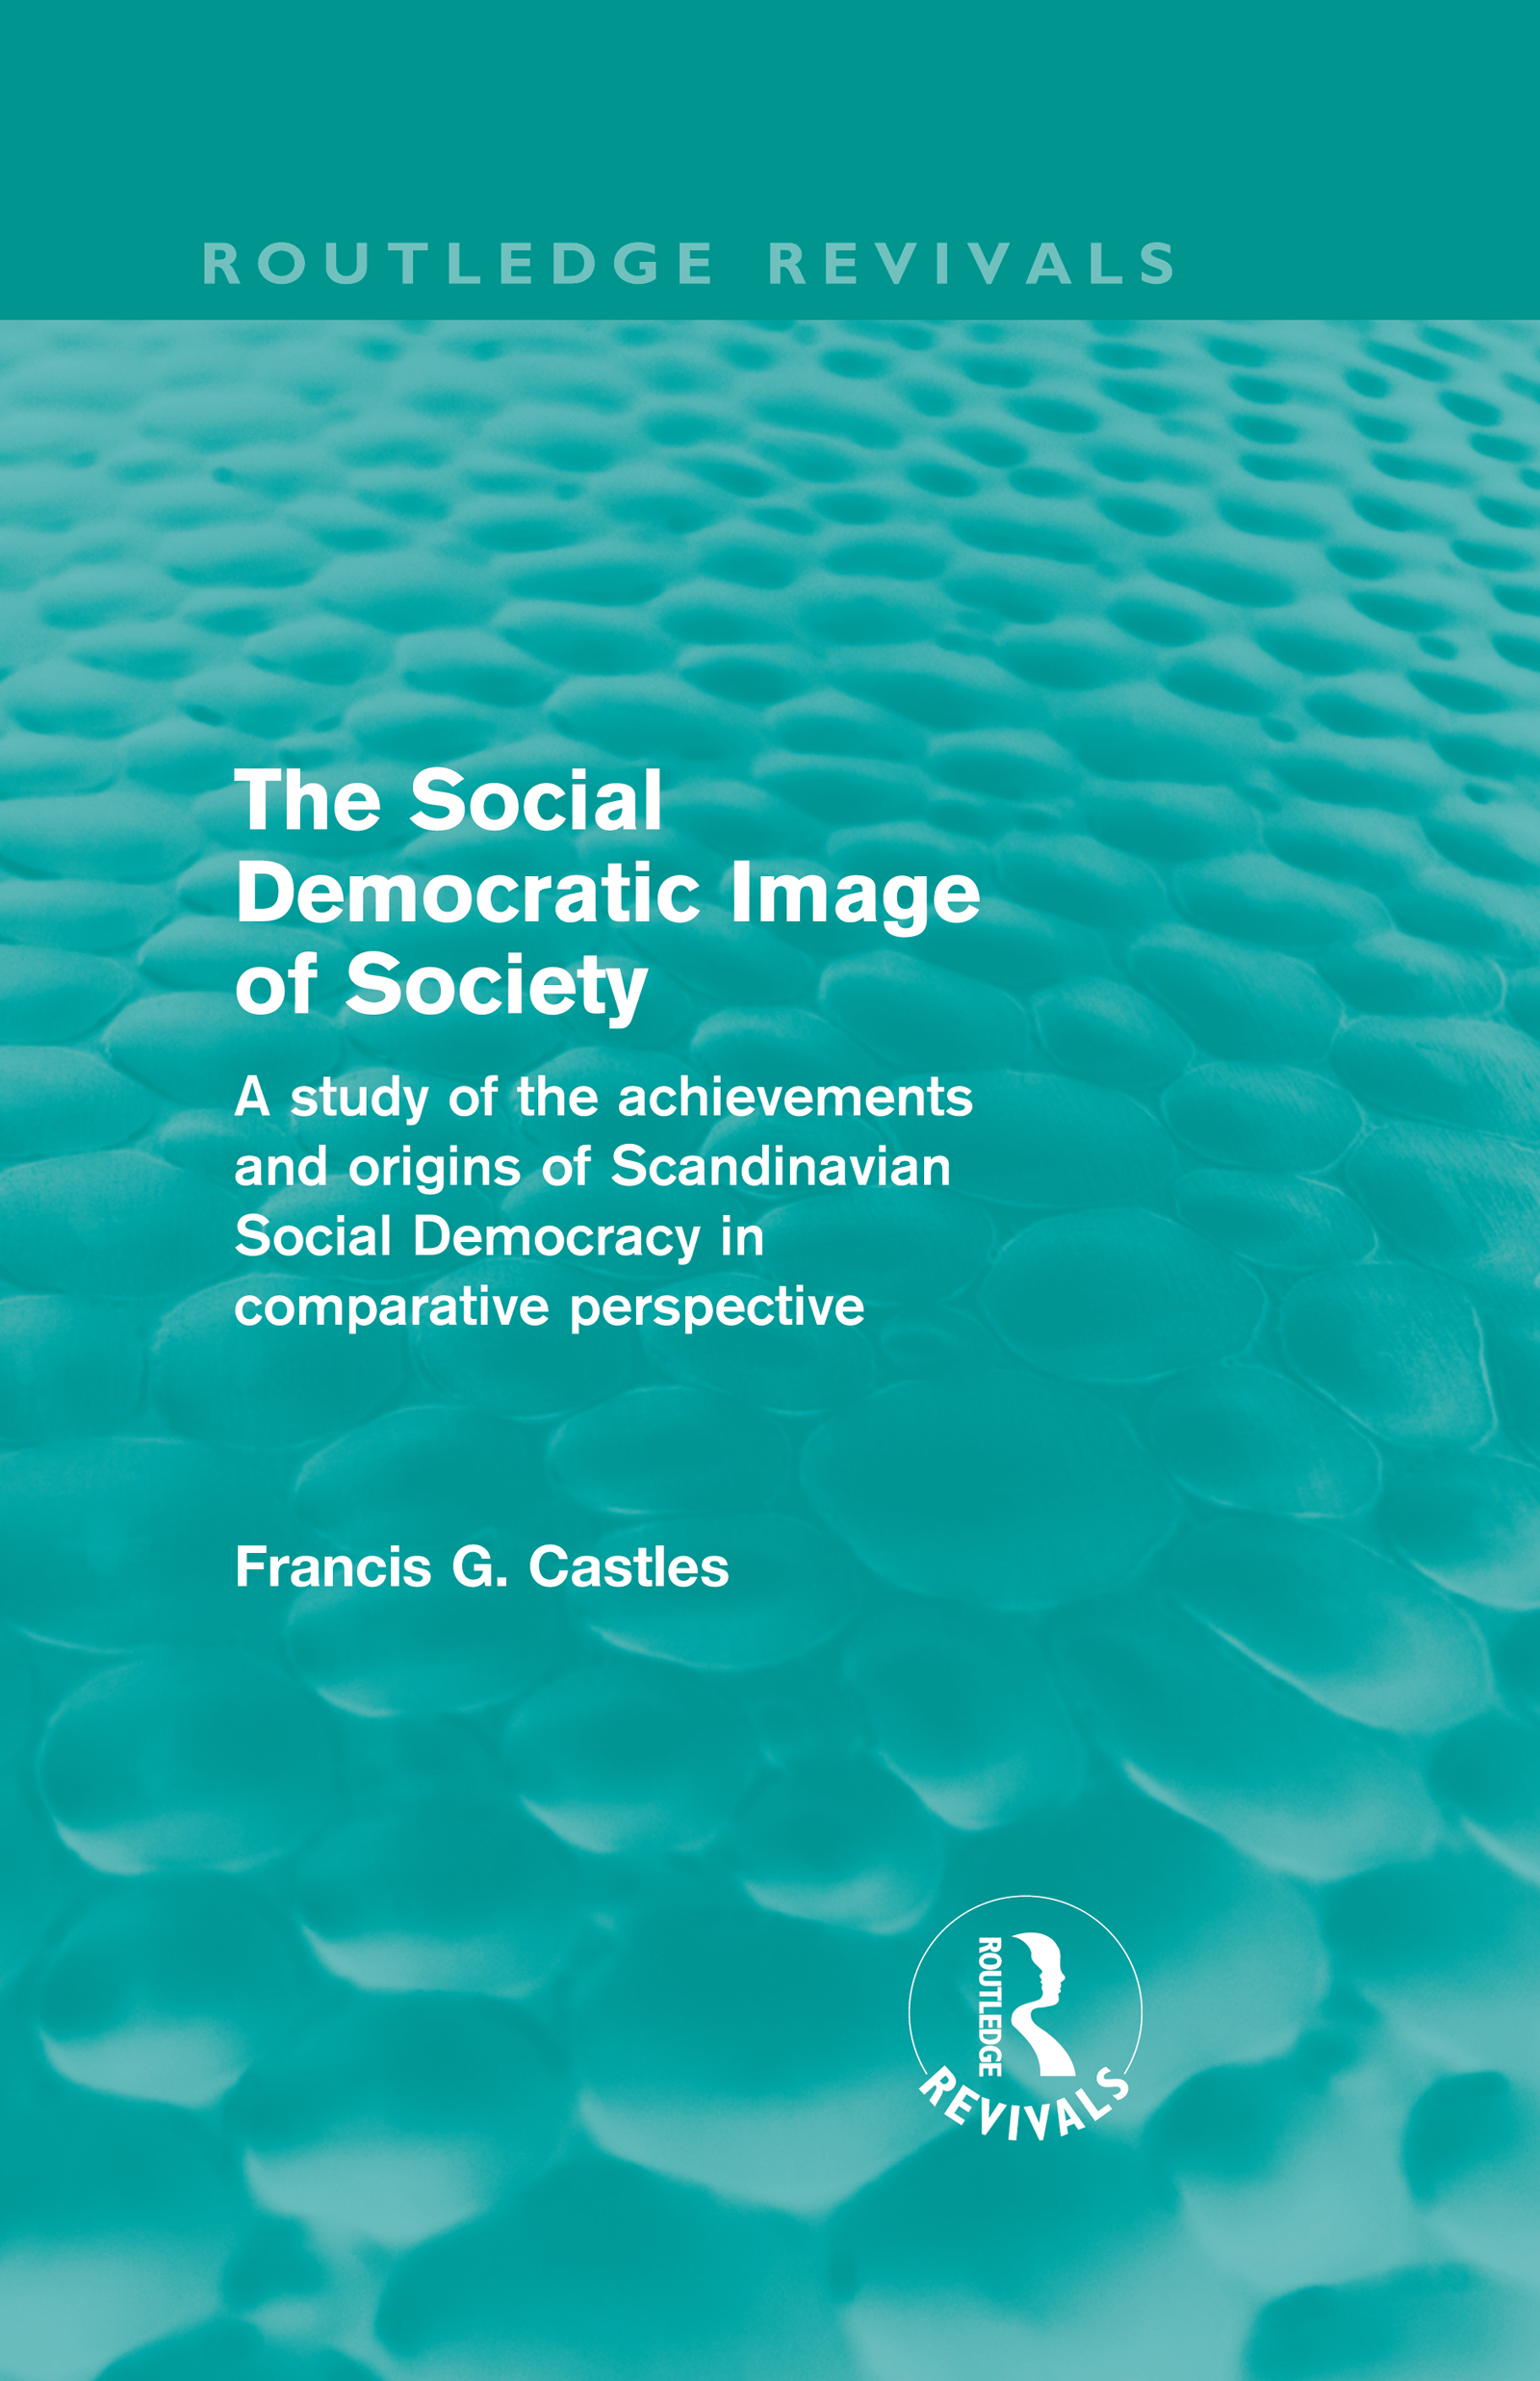 The Social Democratic Image of Society (Routledge Revivals): A Study of the Achievements and Origins of Scandinavian Social Democracy in Comparative Perspective (Hardback) book cover